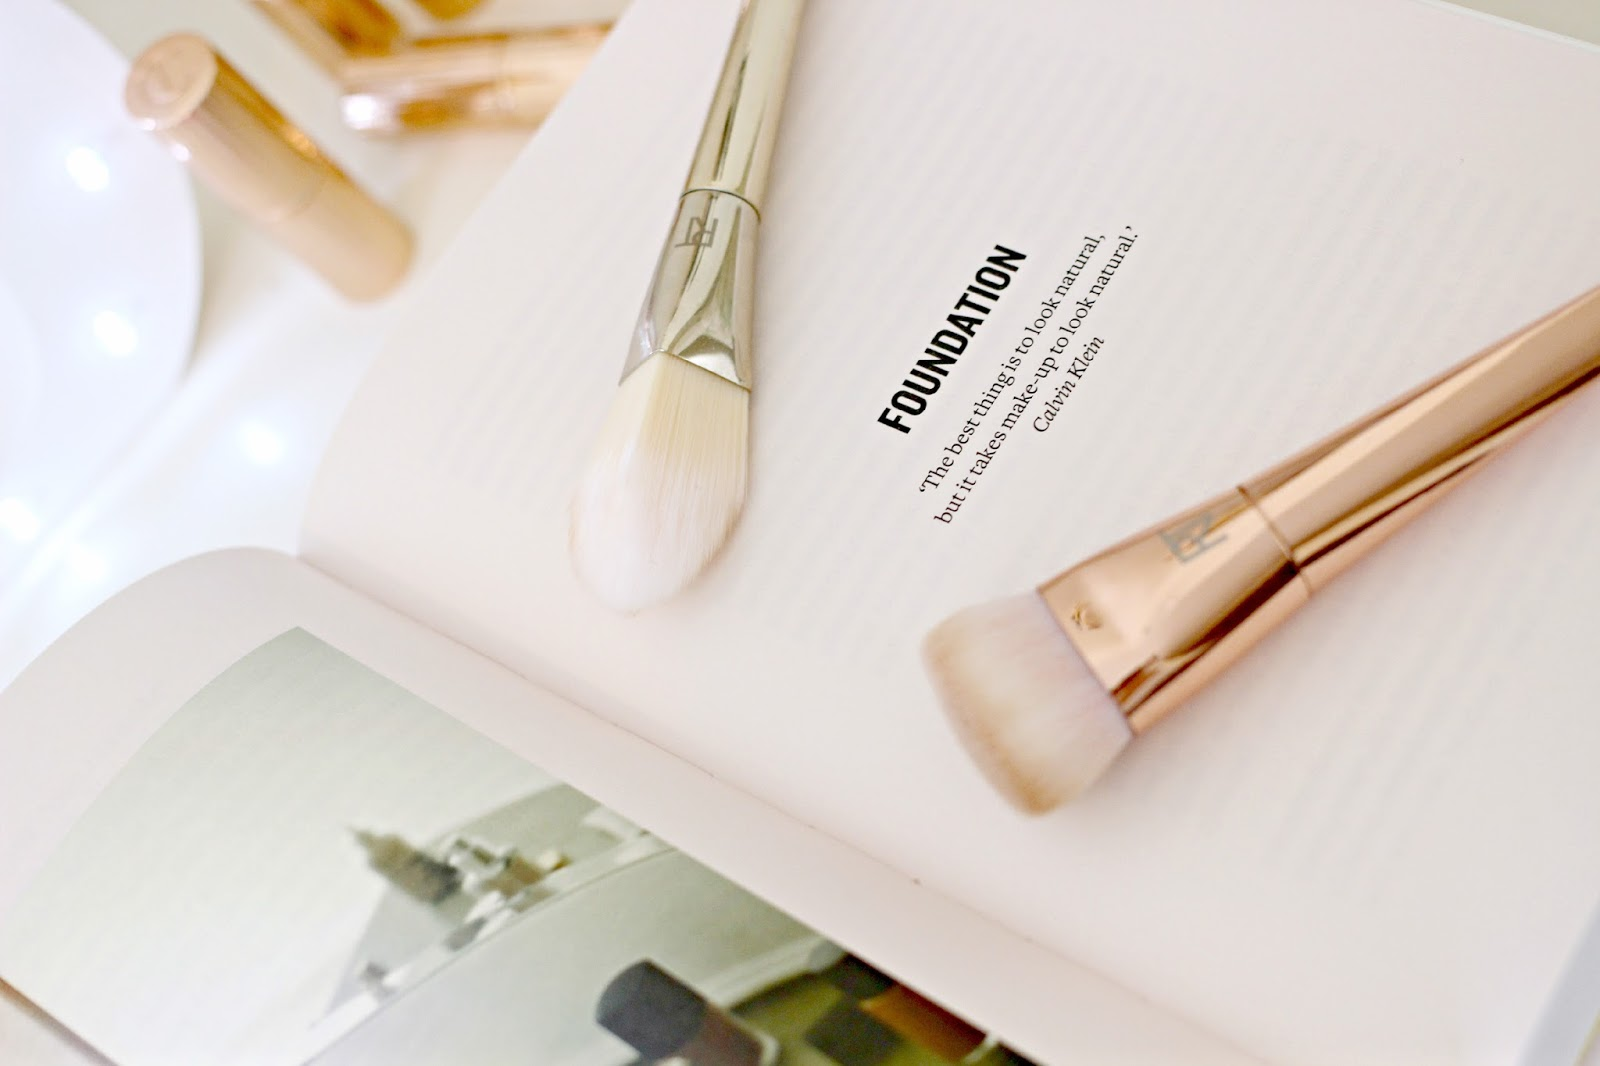 The Best Of : Beauty Books - Fashion Mumblr